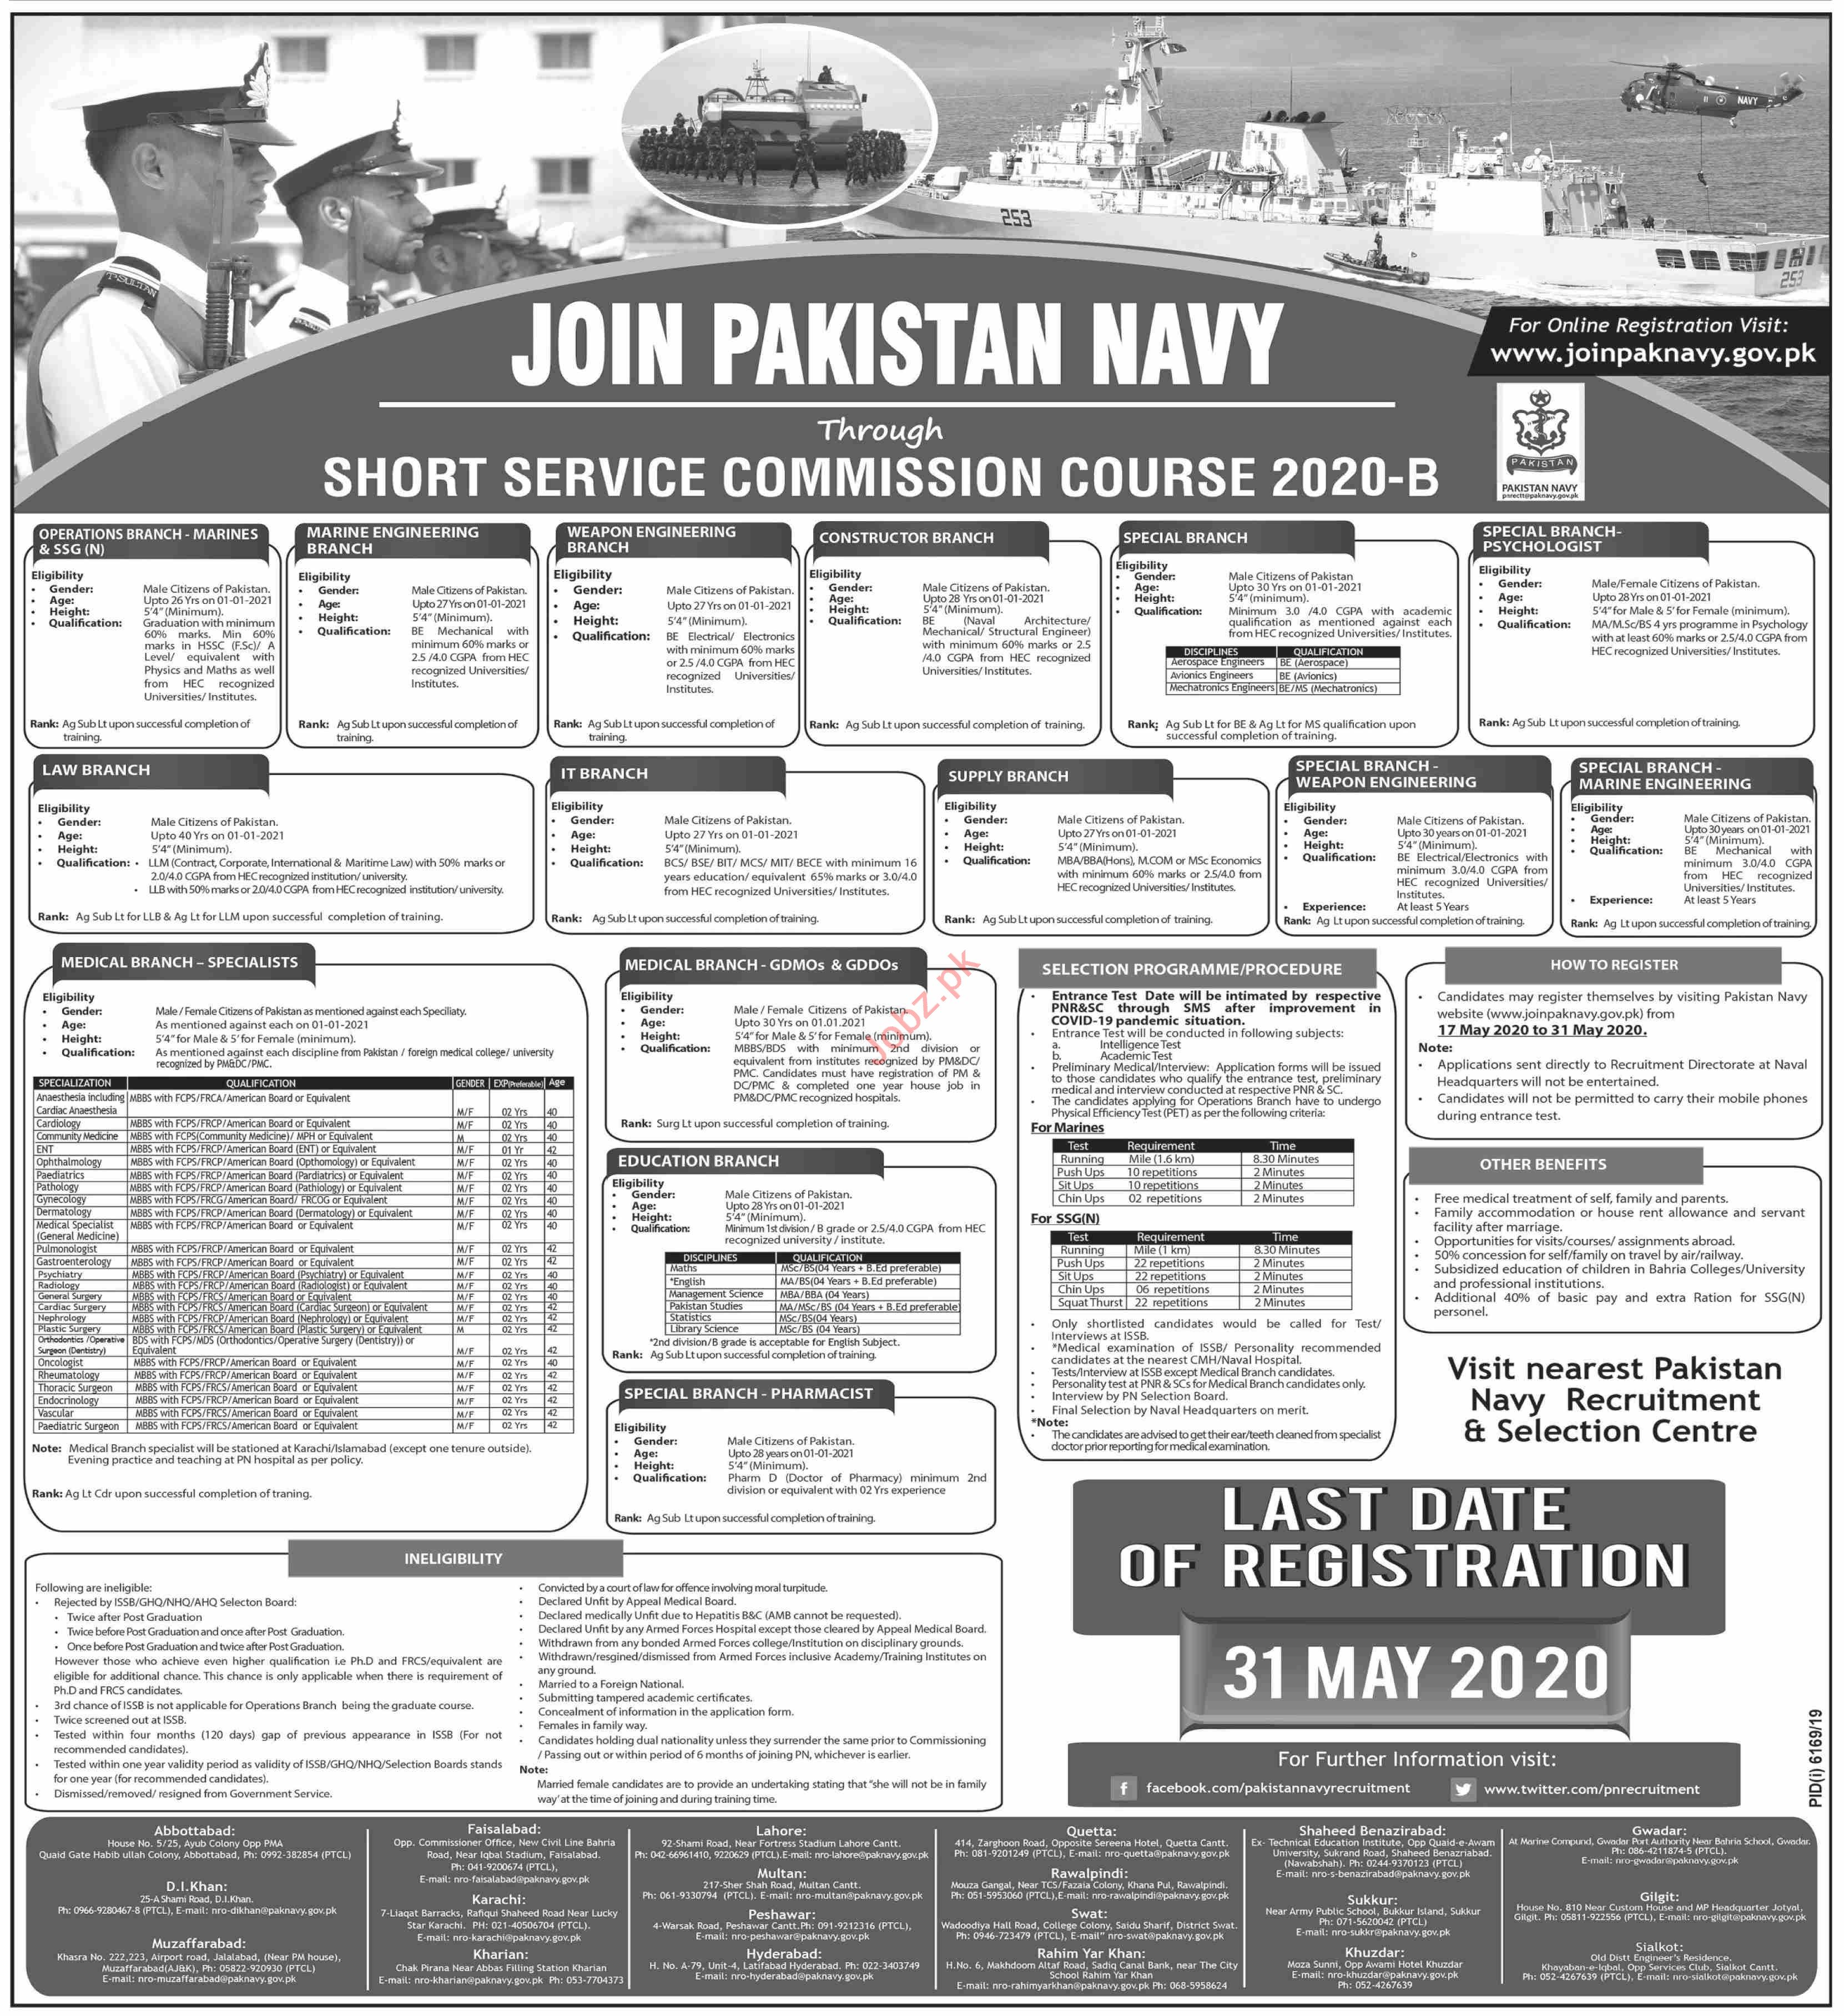 Join Pakistan Navy Short Service Commission Course 2020-B